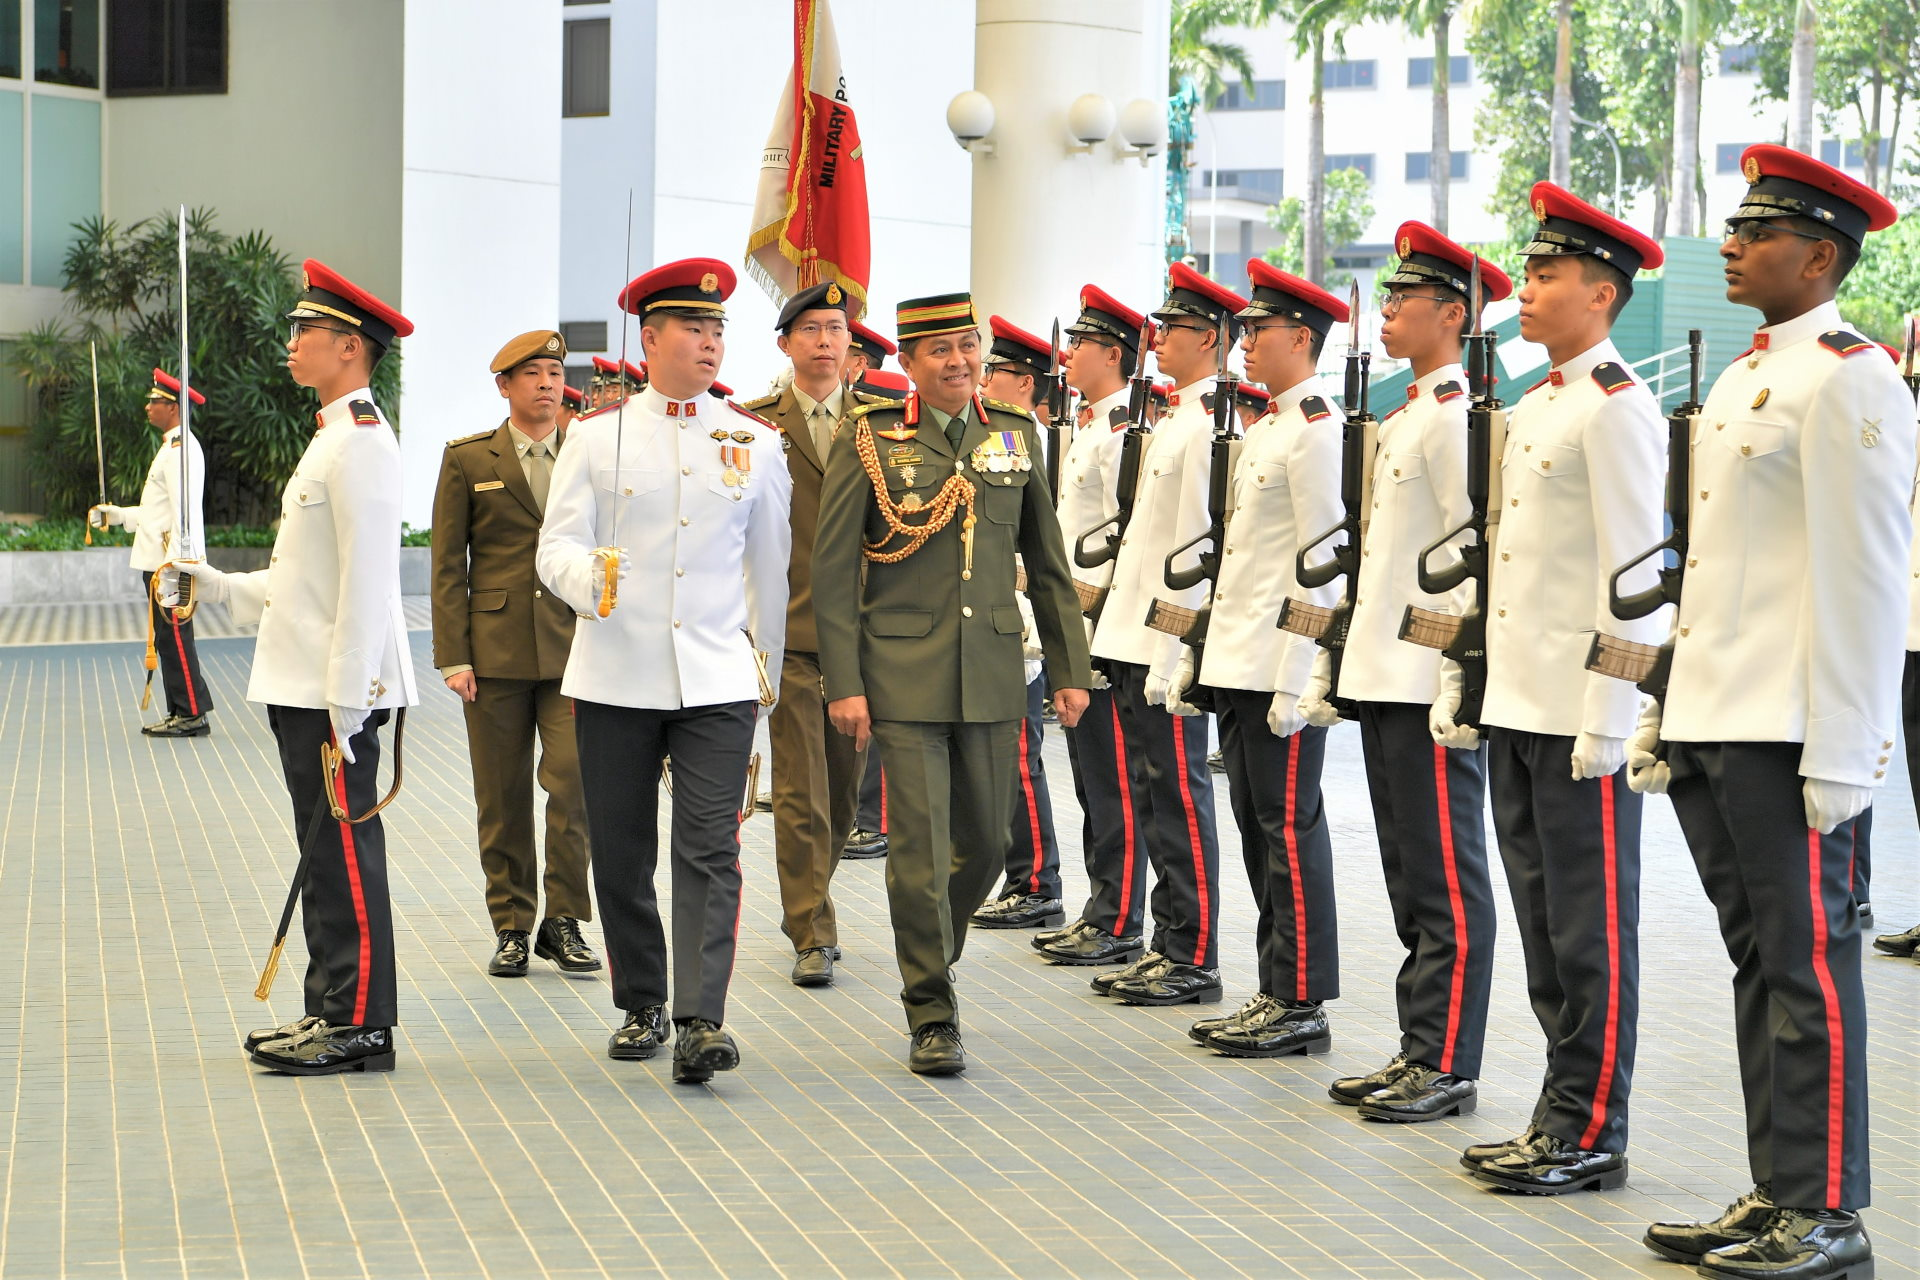 BG Dato Seri Pahlawan Awang Khairul Hamed reviewing a Guard of Honour at MINDEF prior to the award investiture.